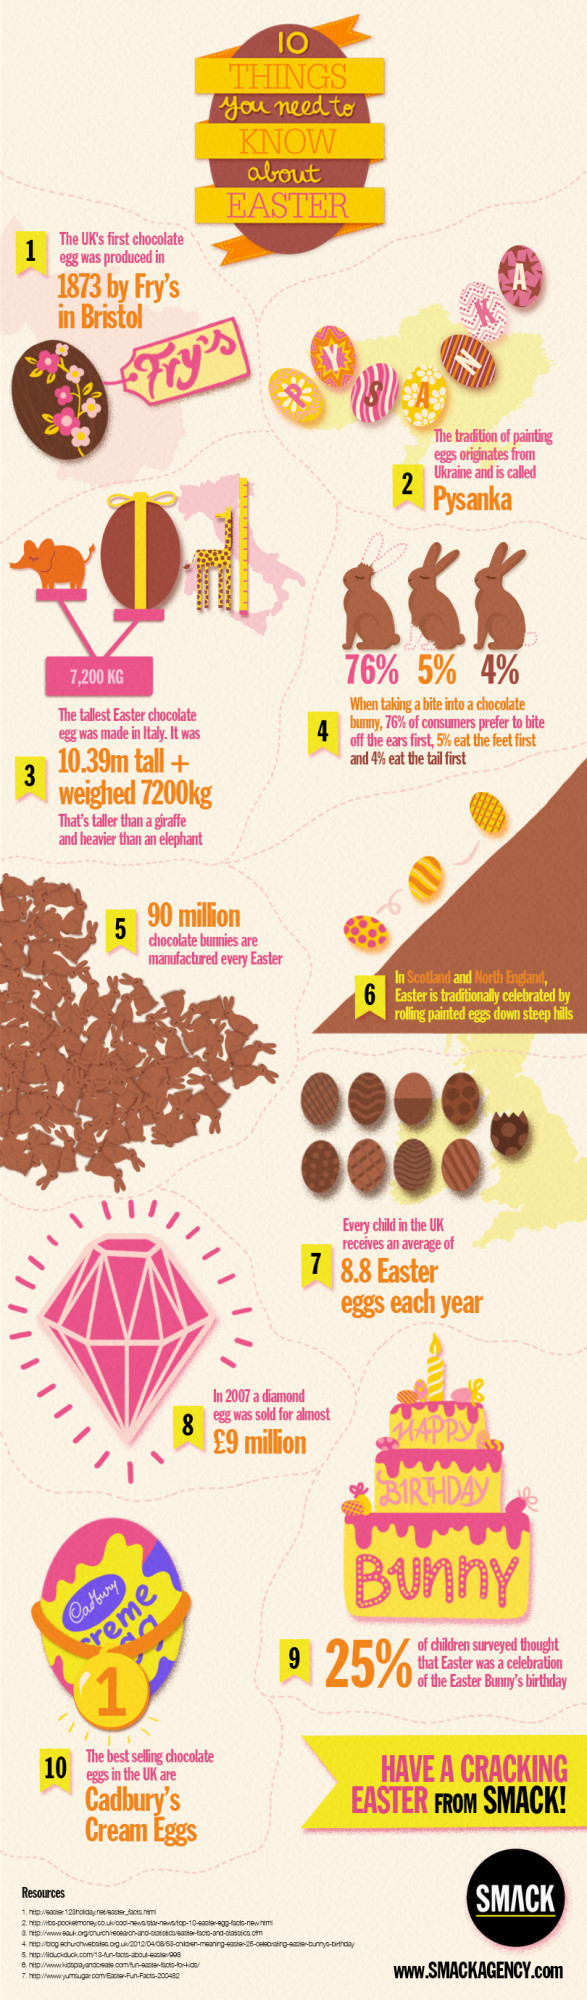 10 Things You Need To Know About Easter